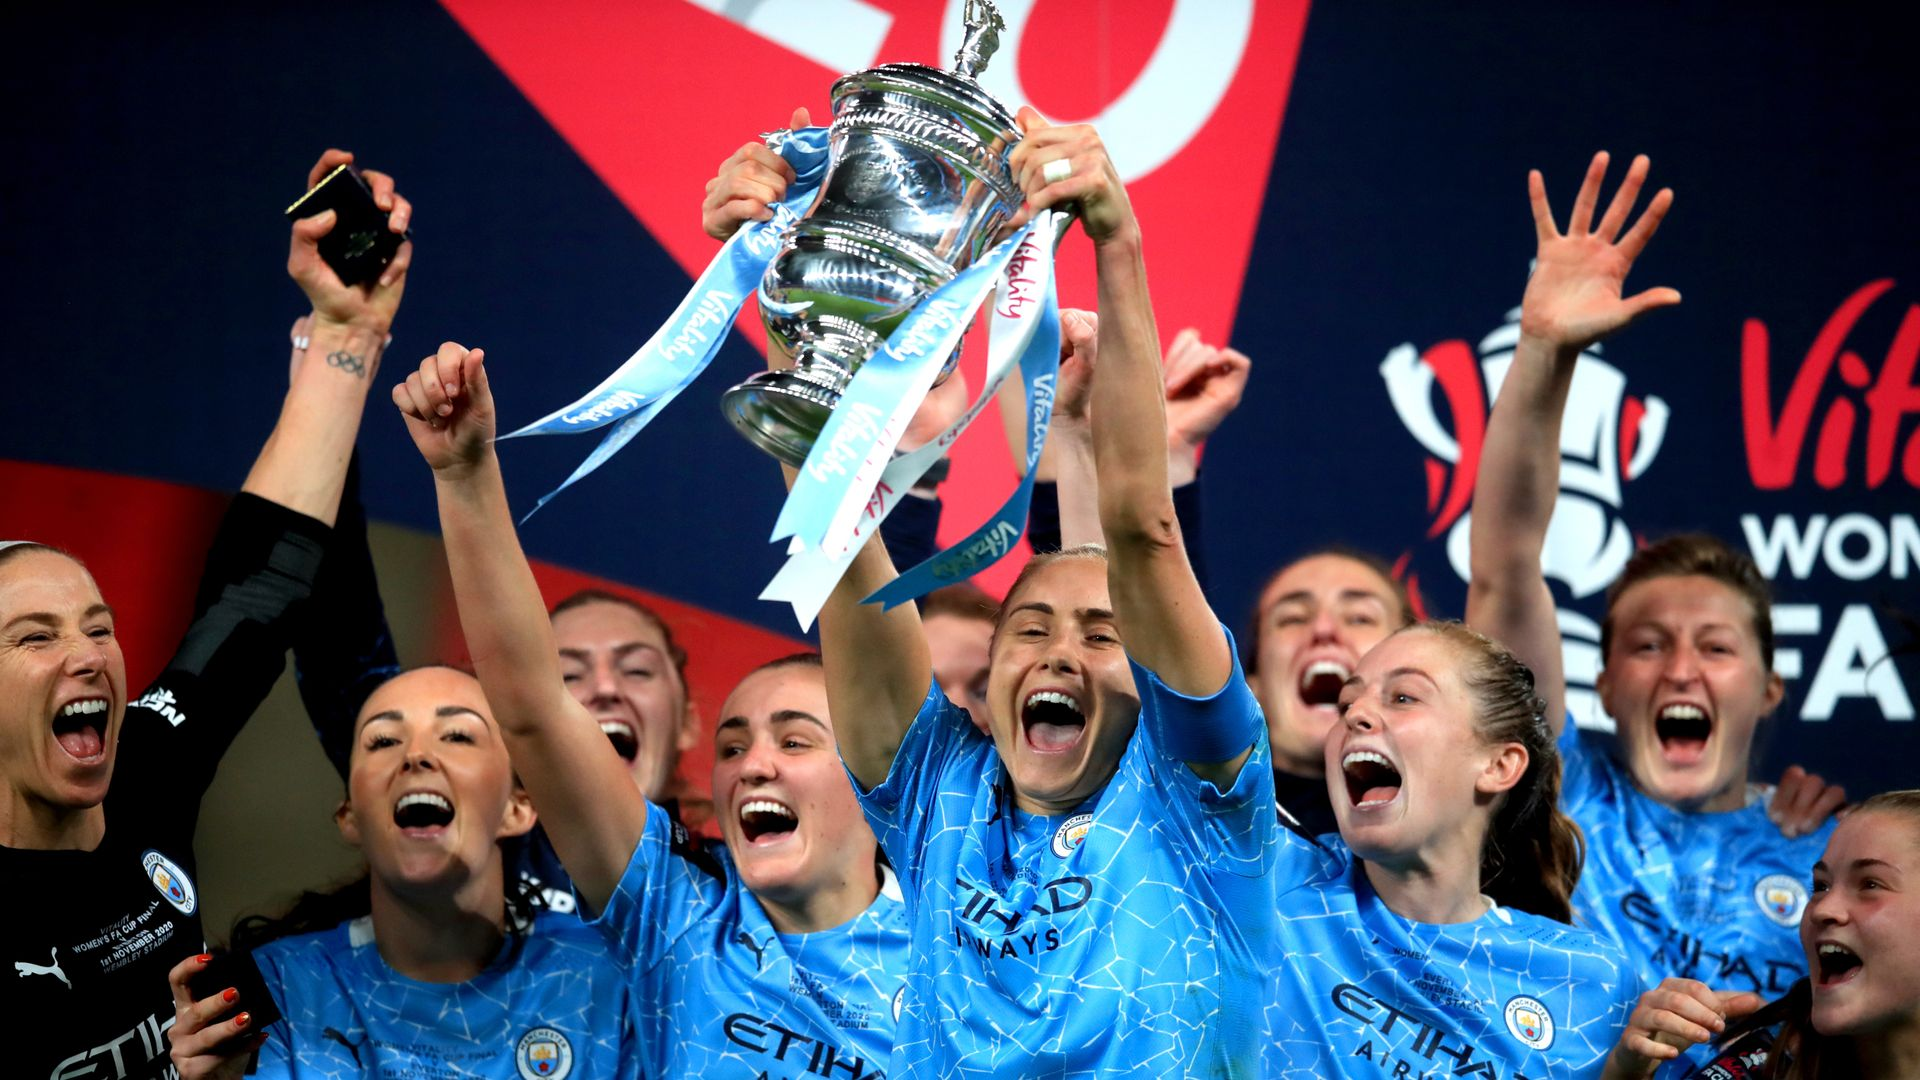 Women's FA Cup to be completed next season